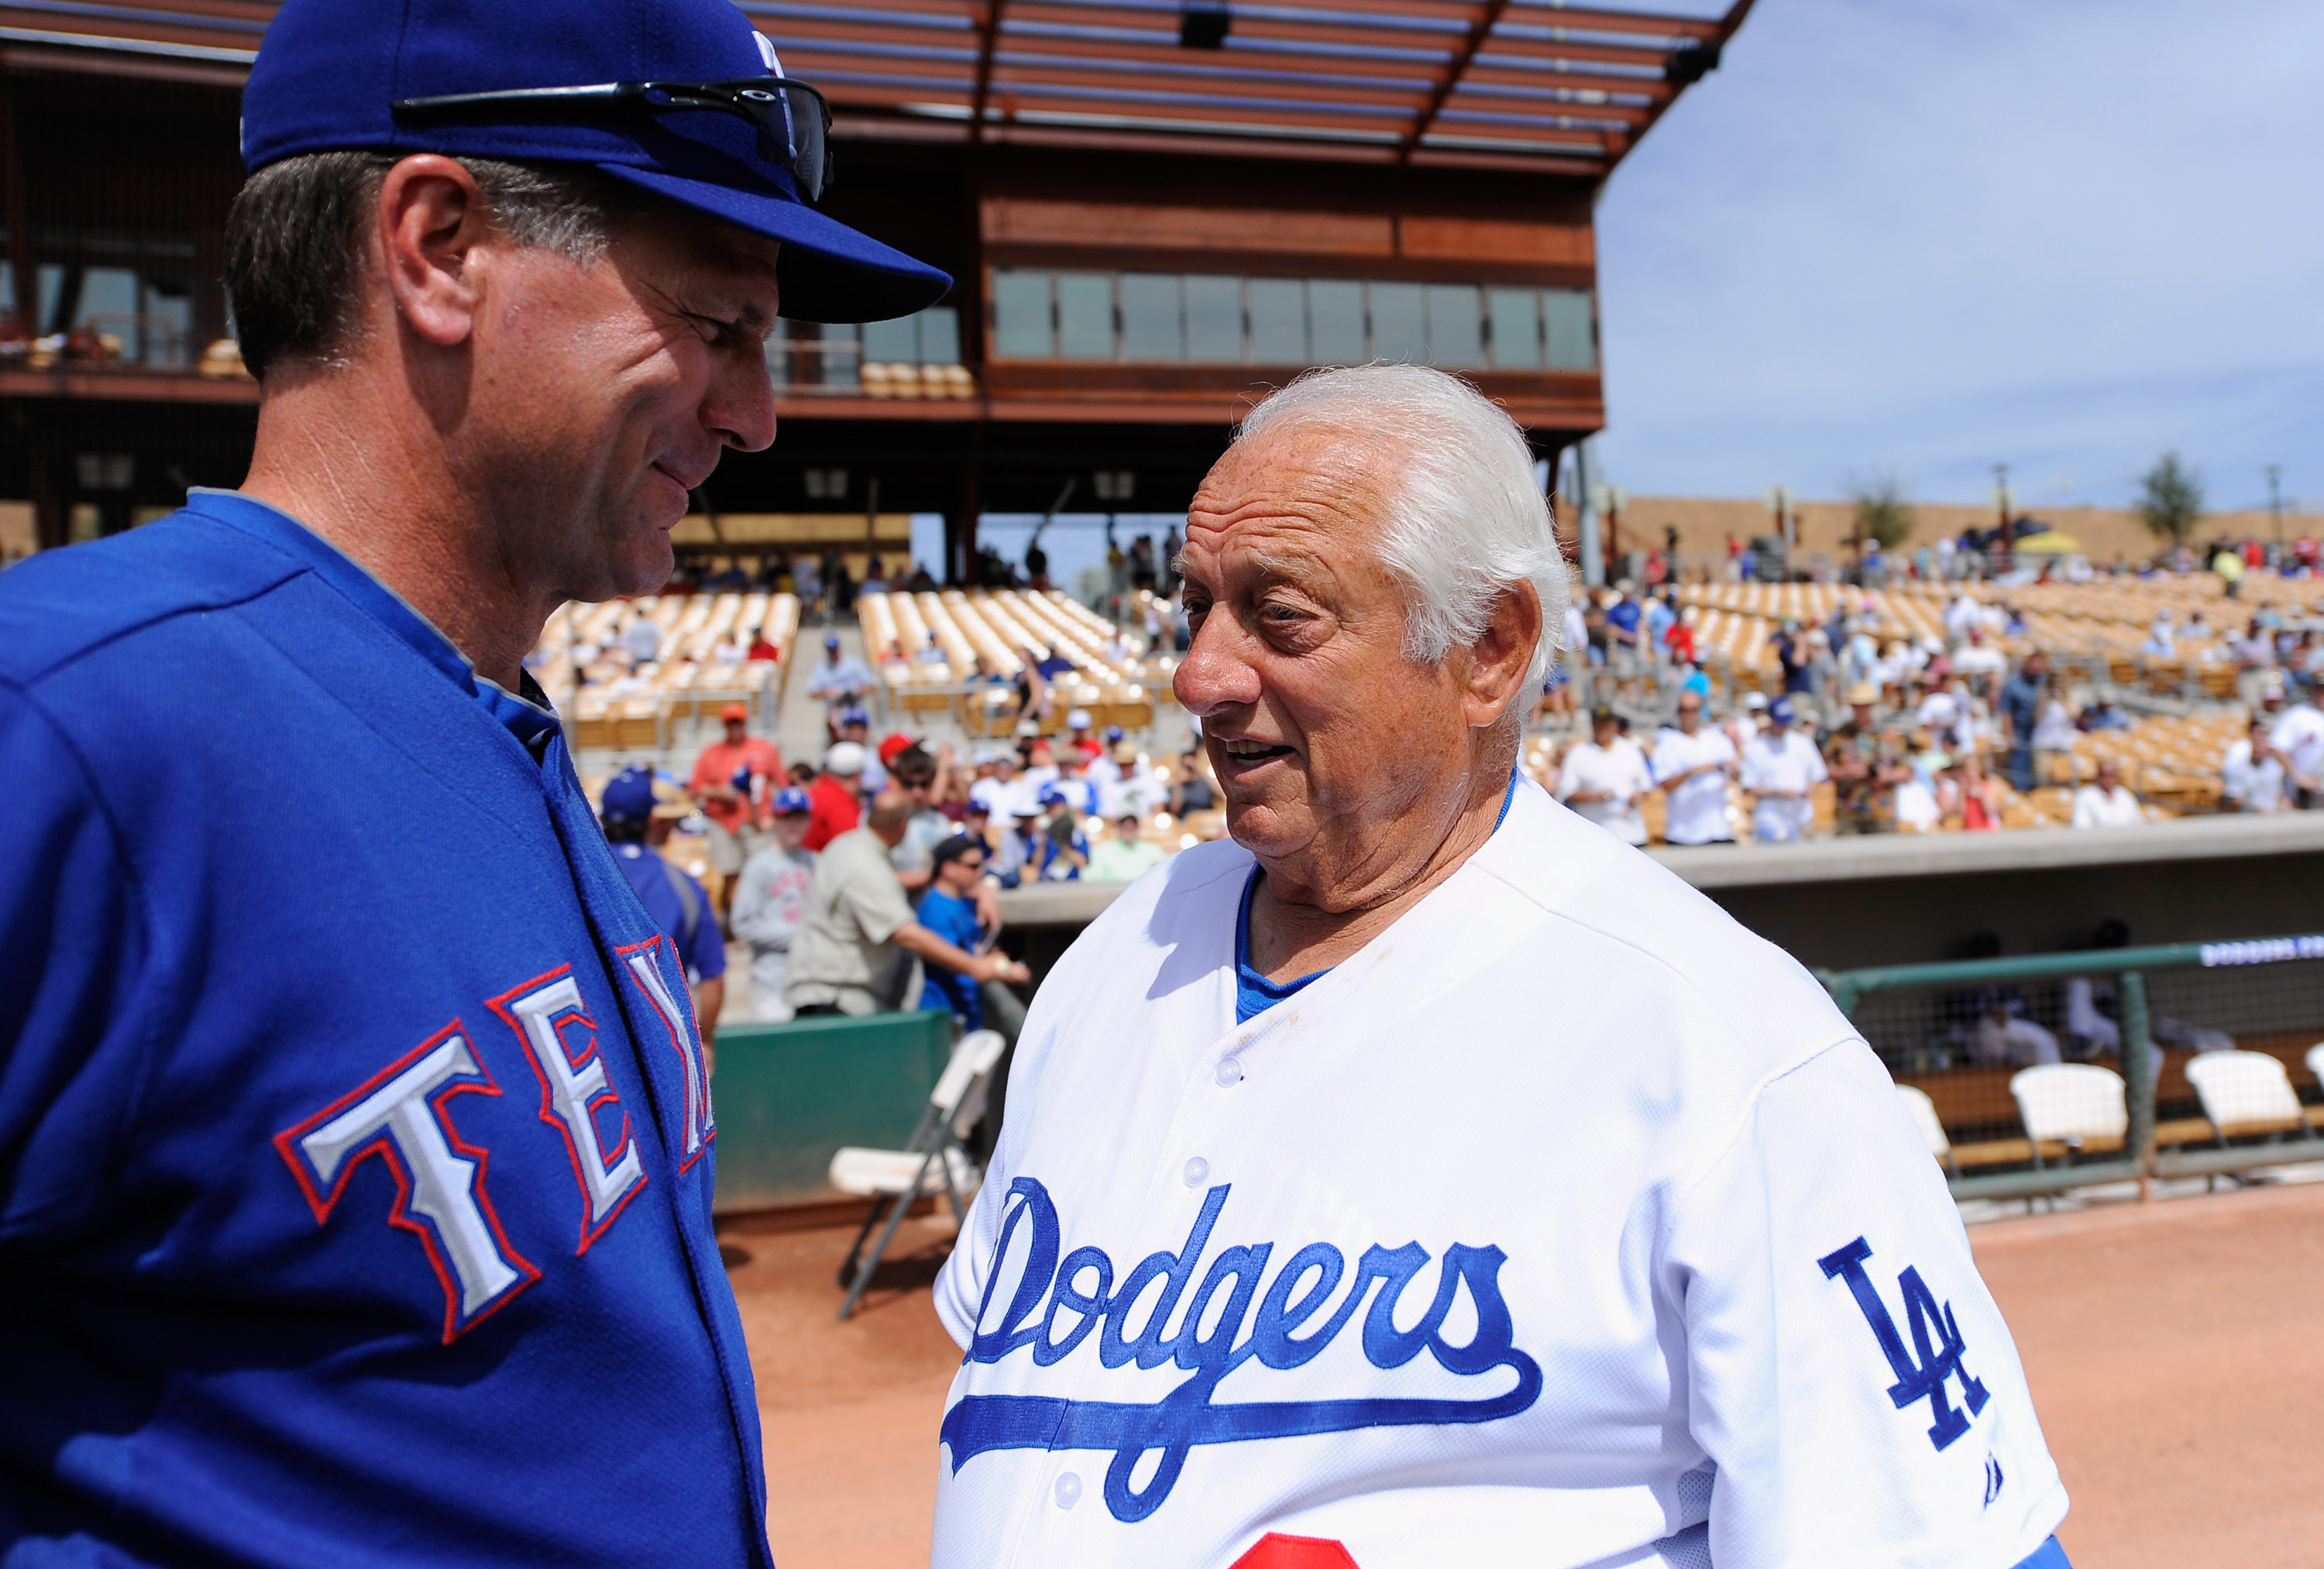 GLENDALE, AZ - MARCH 15:  Hall of Fame manager Tommy Lasorda #2  of the Los Angeles Dodgers visit with coach Dave Anderson #16  of the Texas Rangers during the spring training baseball game at Camelback Ranch on March 15, 2011 in Glendale, Arizona.  (Phot